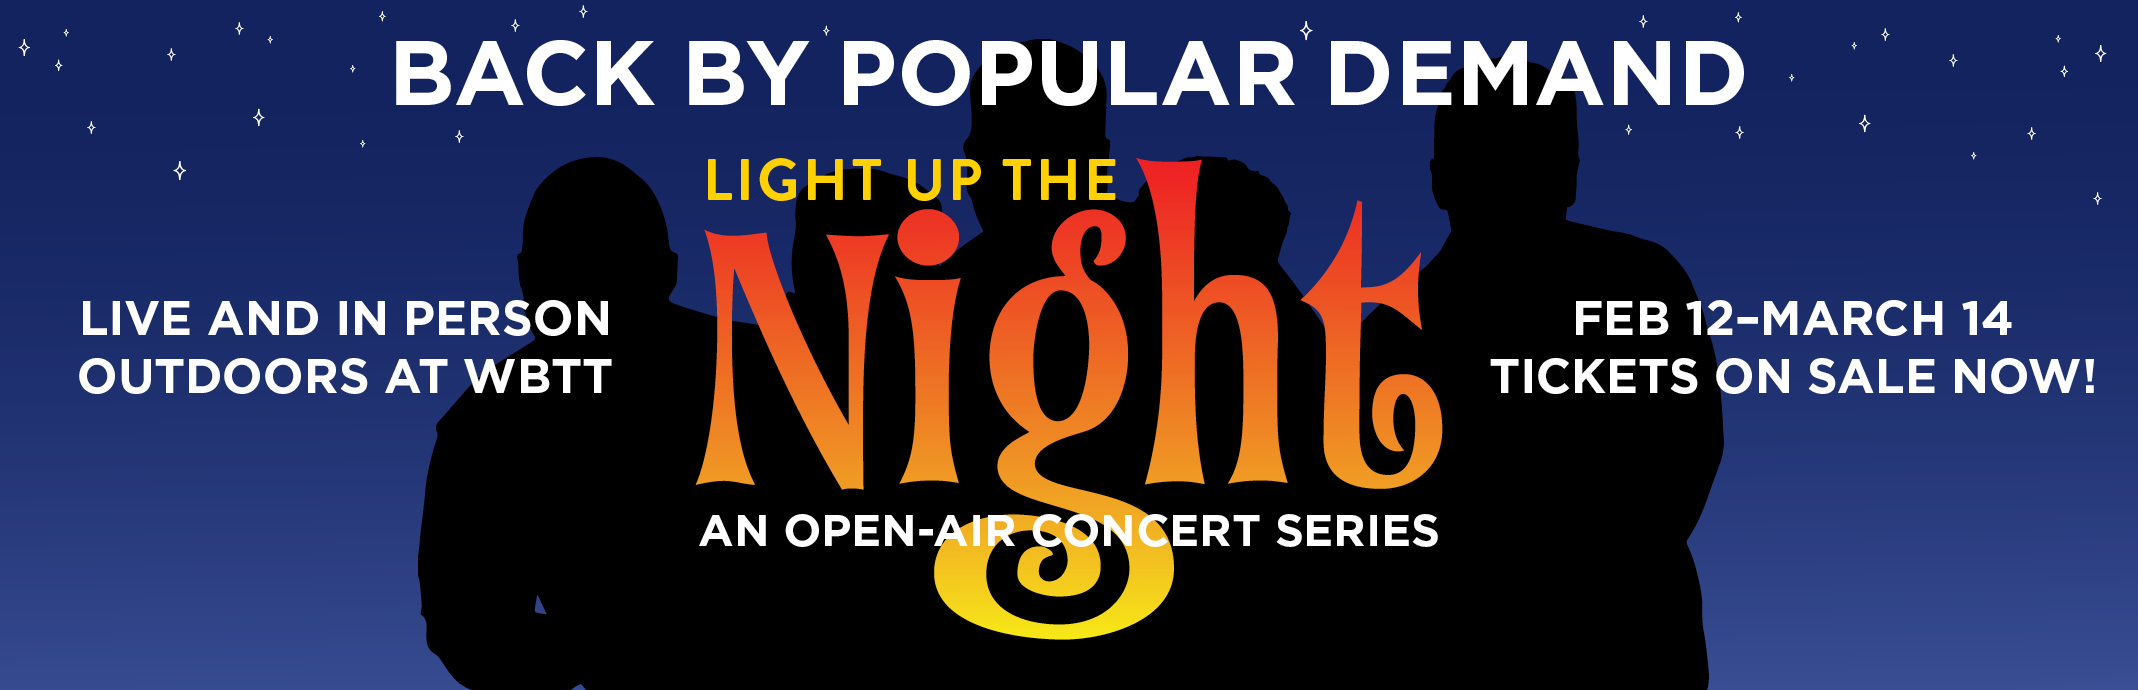 Light Up The Night. Back by Popular Demand.